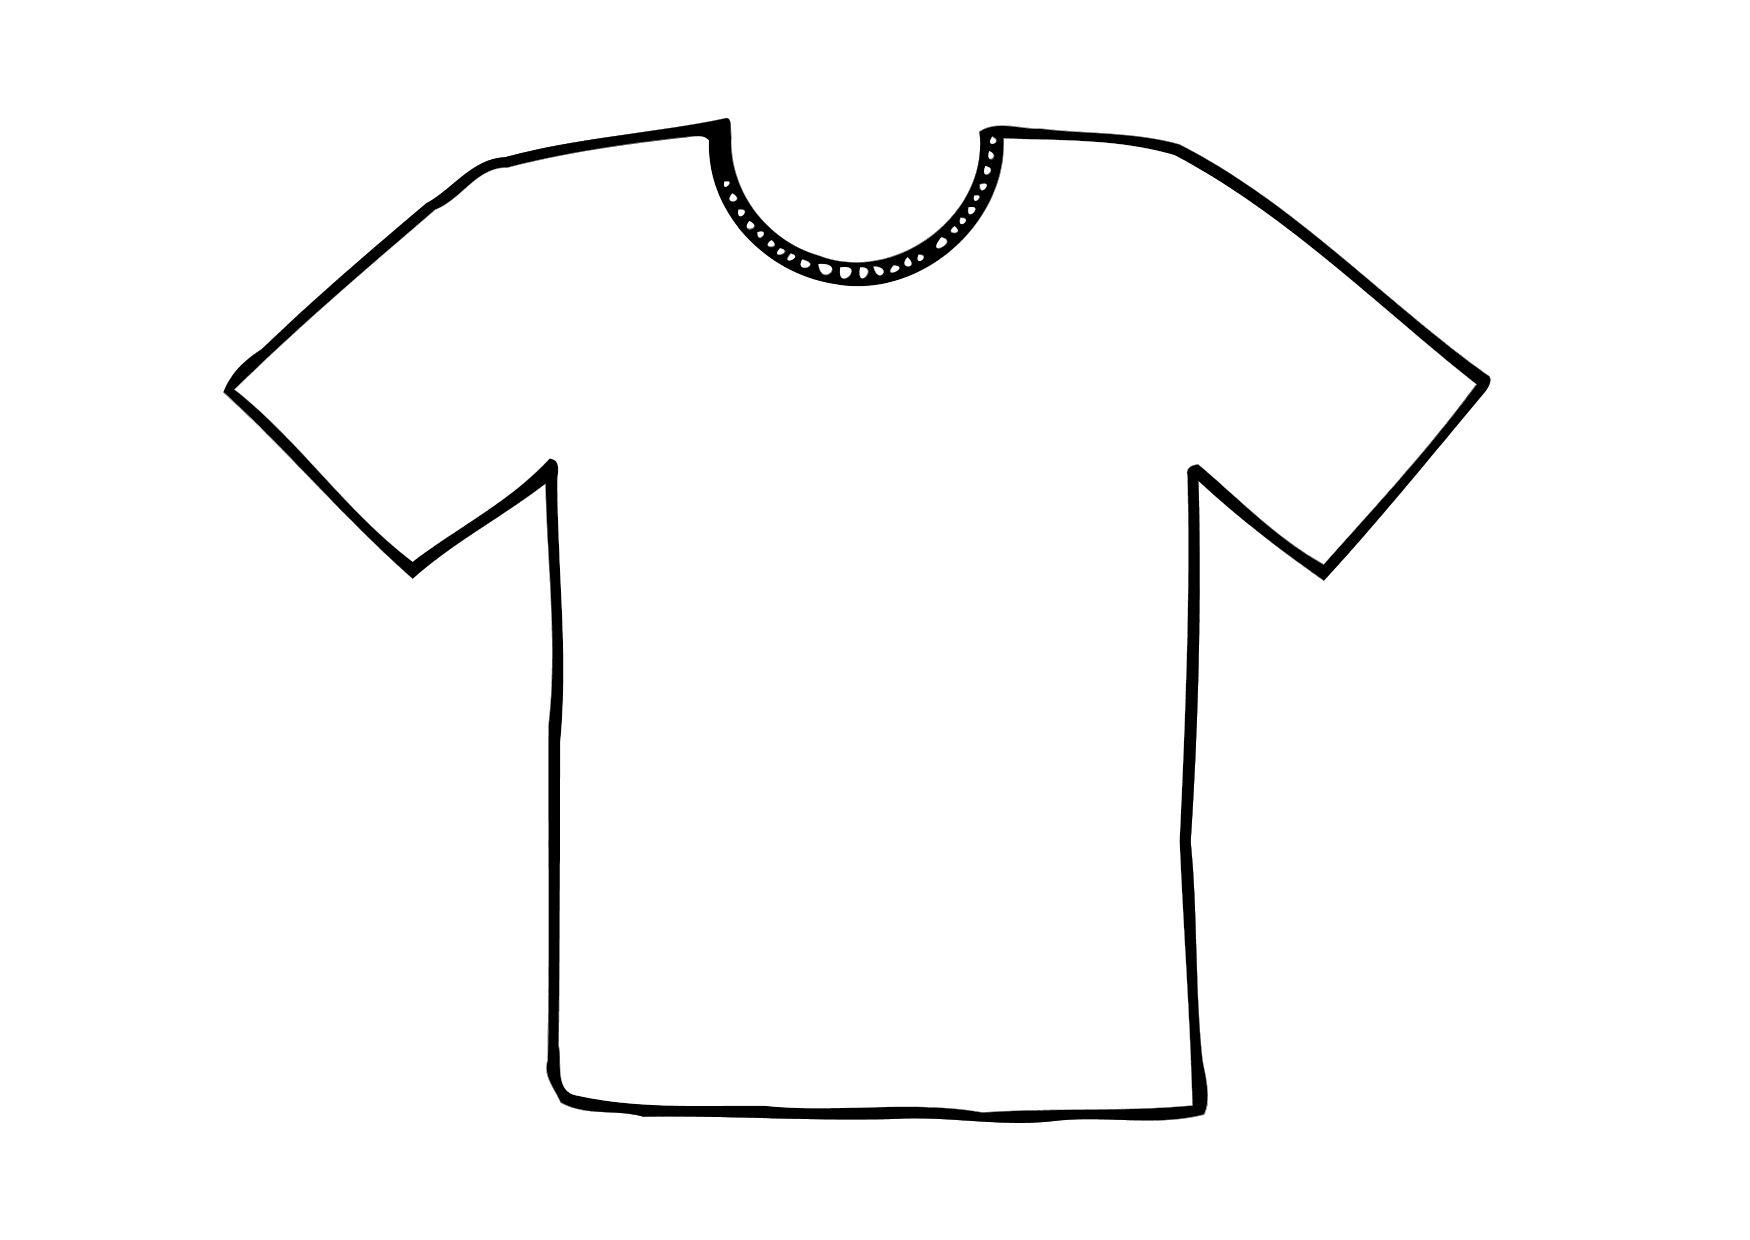 It's just a photo of Epic Shirt Coloring Pages